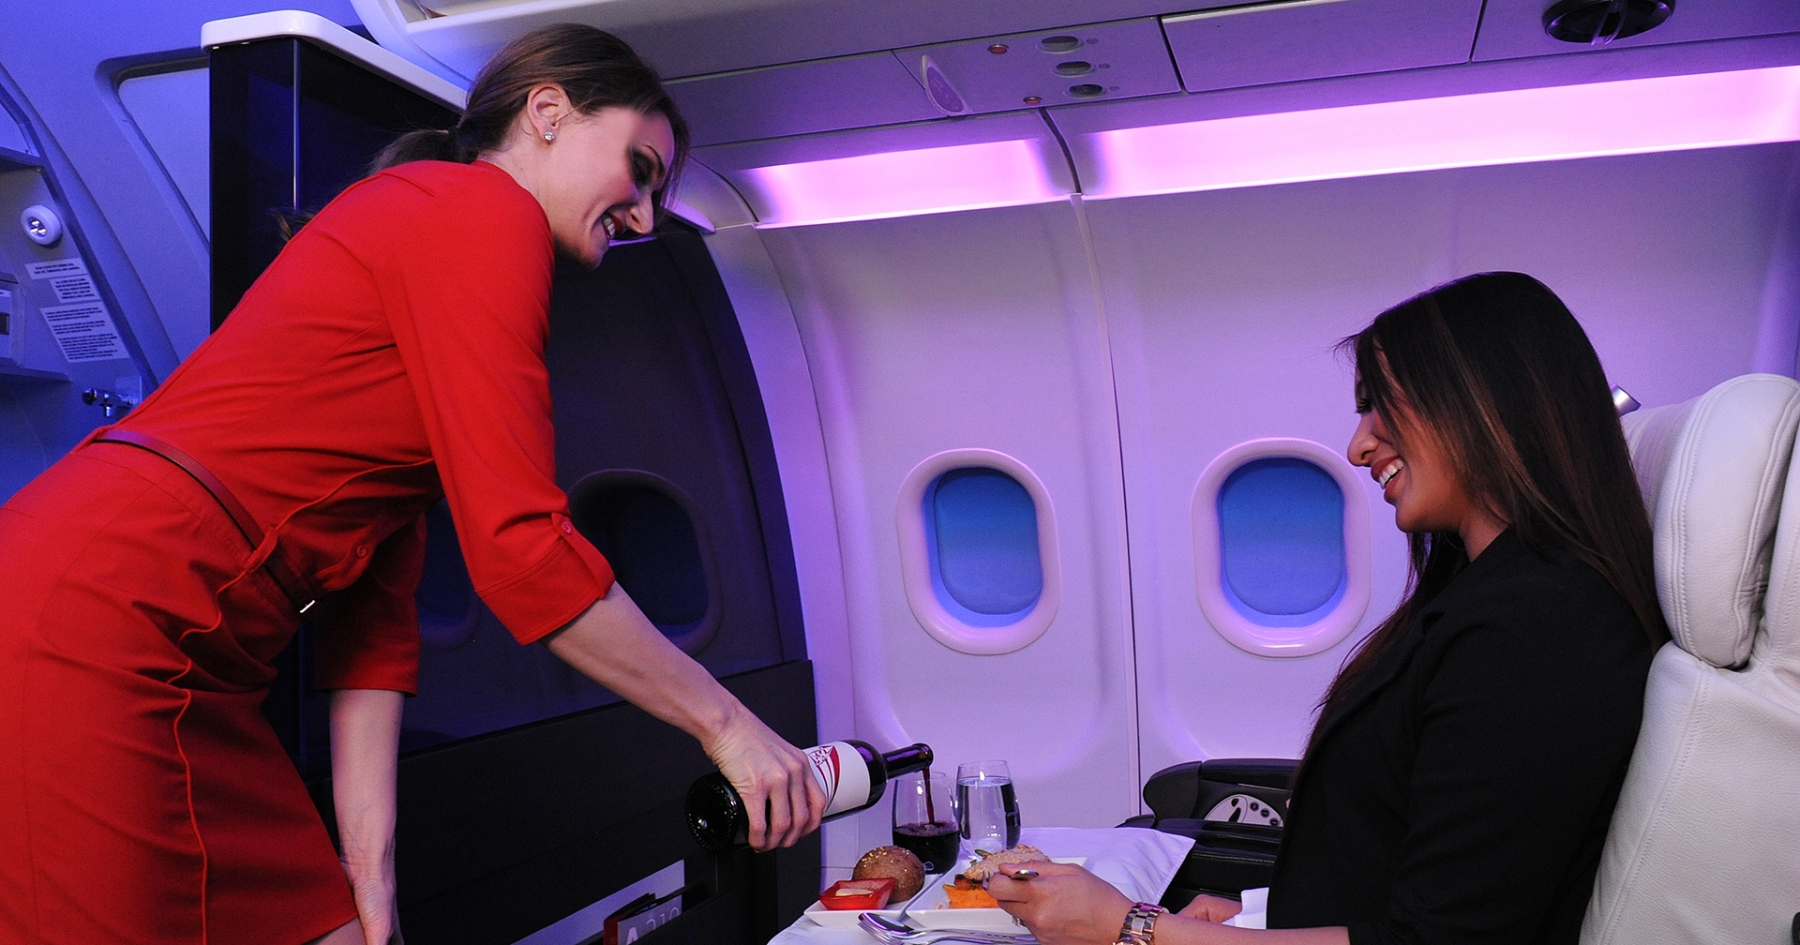 The Top 5 Airlines for Booze, Ranked